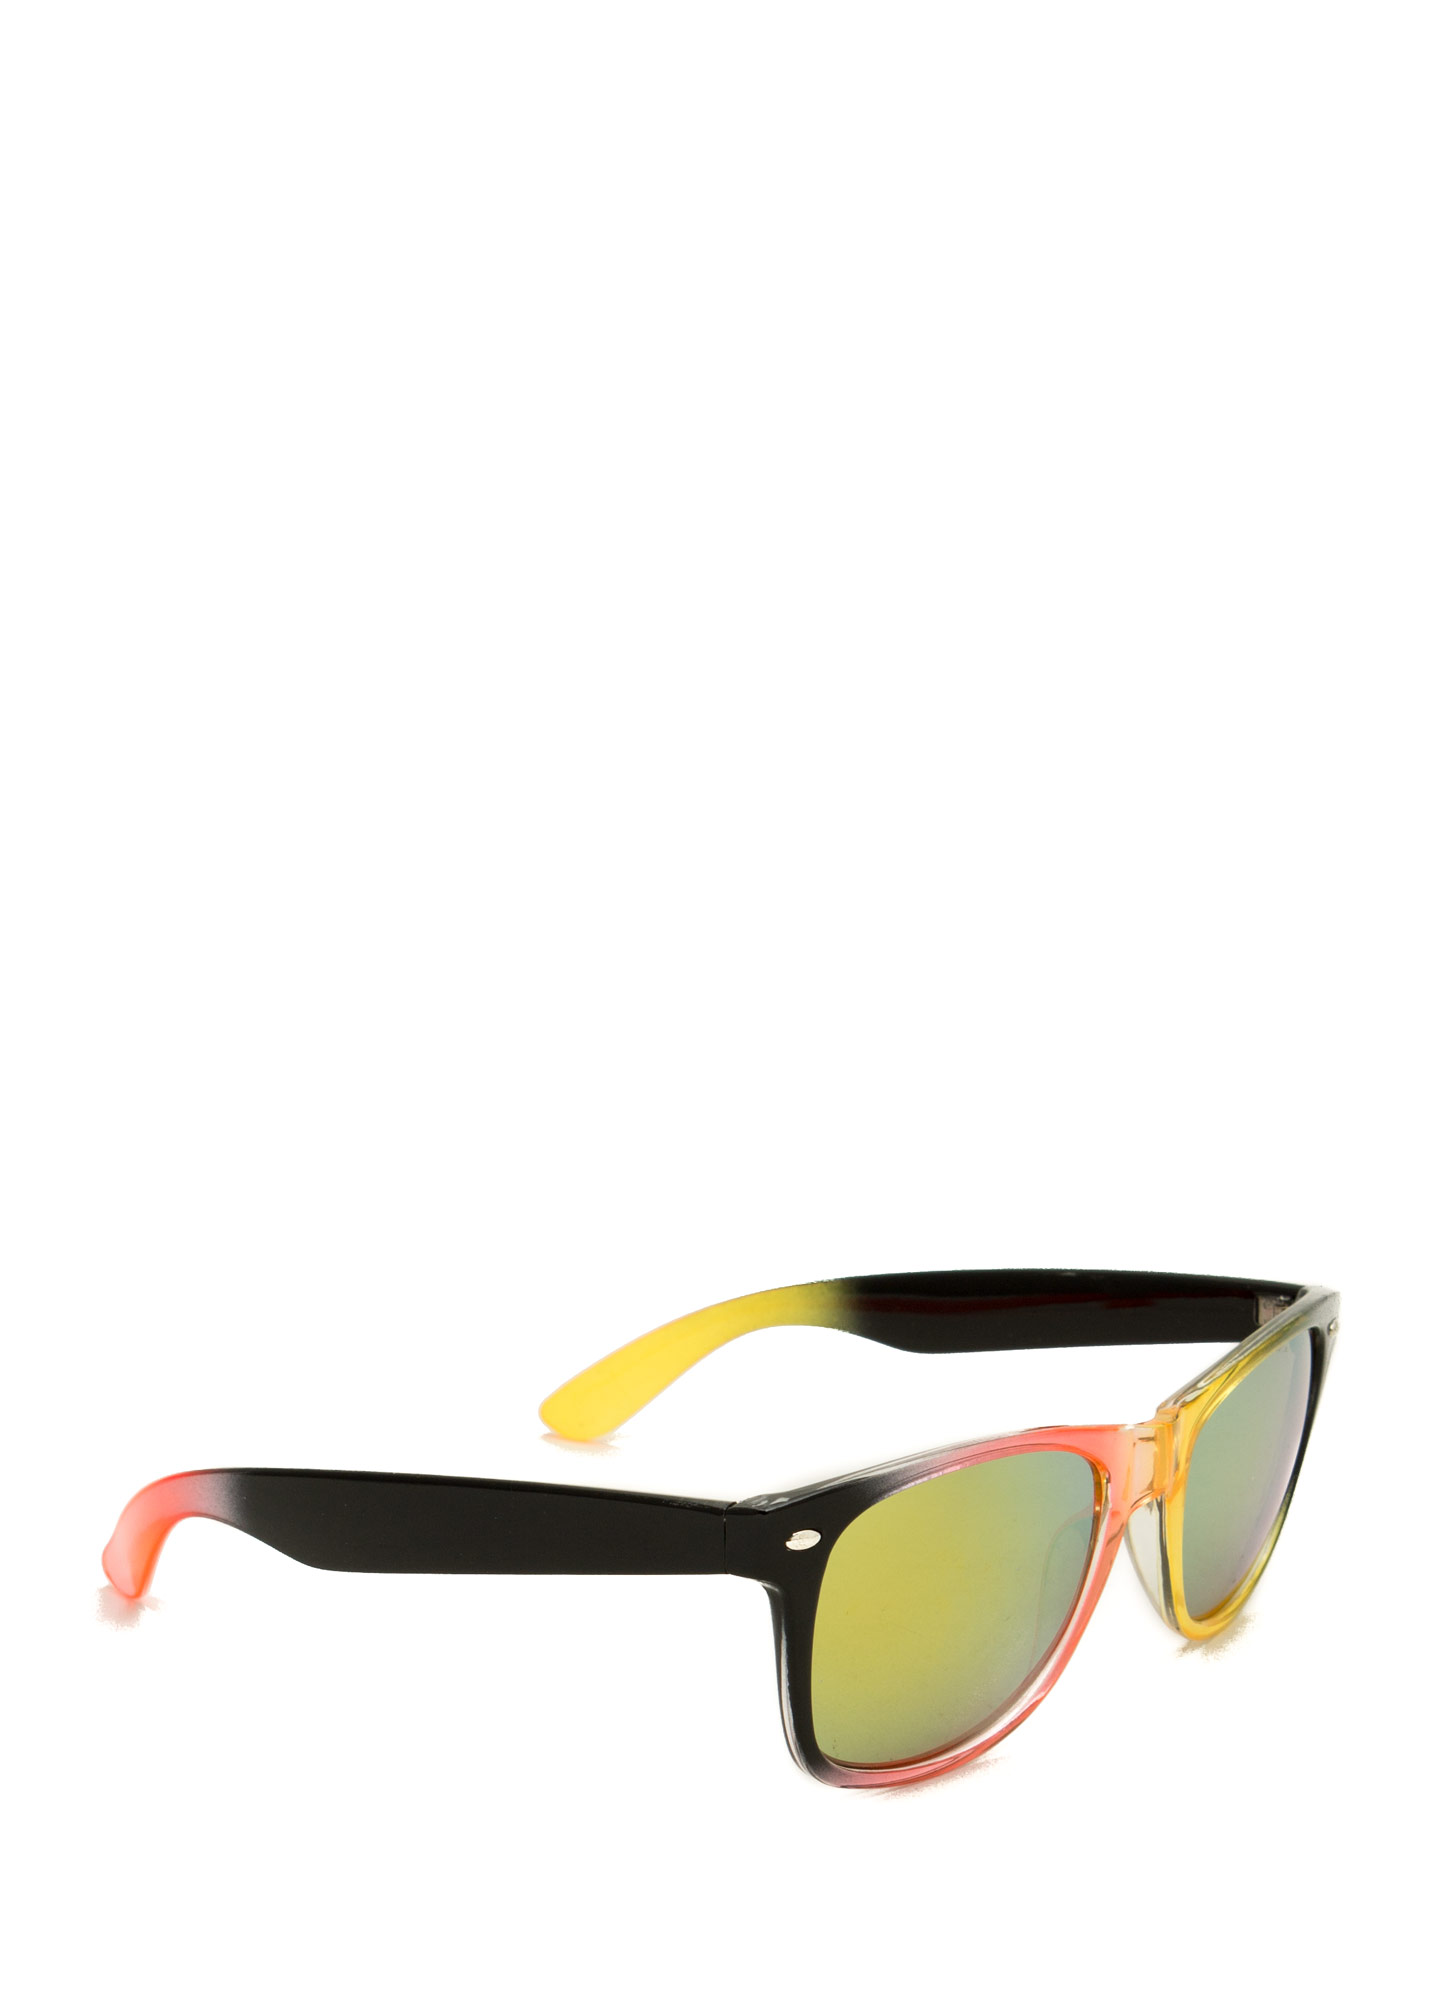 Multicolor Reflective Sunglasses ORANGEMULT